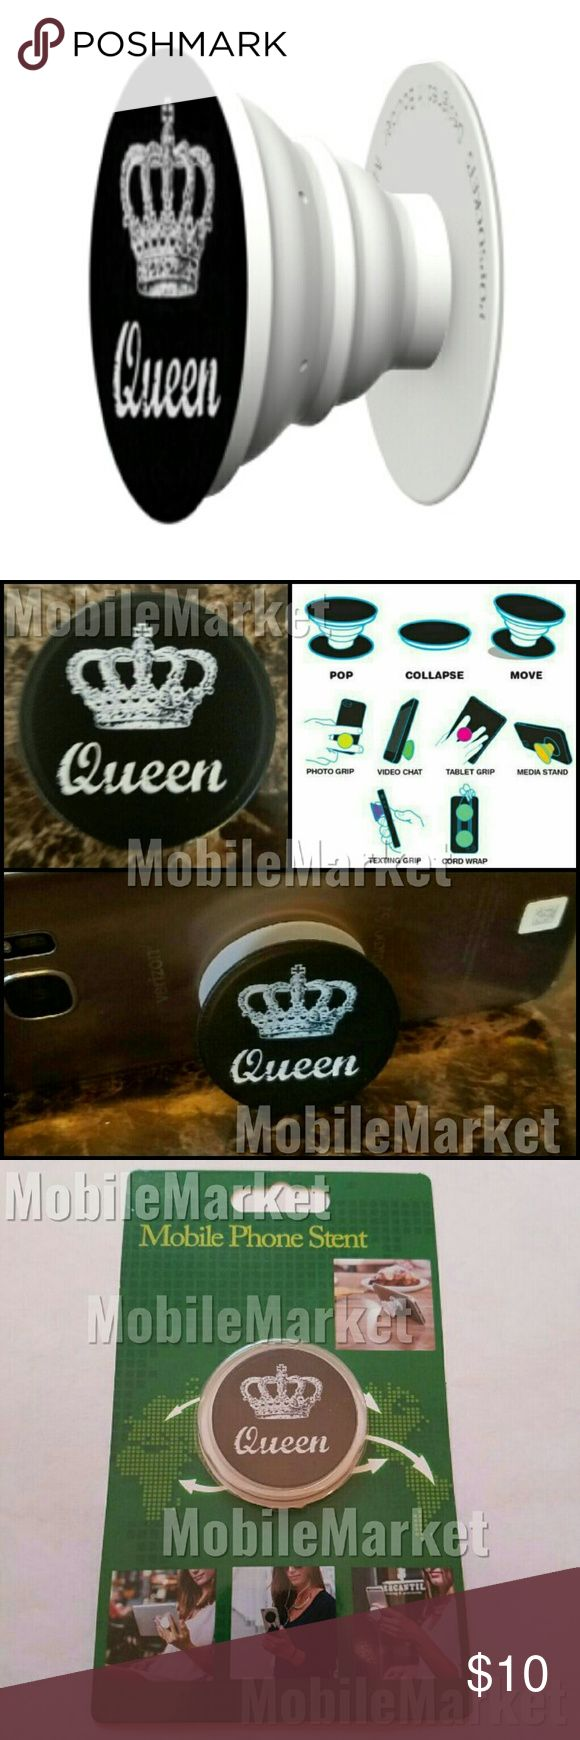 Mobile phone grip/stand Queen *this is an individual listing for 1 phone stand, color is according to first picture*  Pop, tilt, wrap, grip, collapse, repeat! Mobile phone stent like a pop socket (popsocket). Have a secure grip while calling, taking selfies, and texting. Use as a phone stand, portrait and landscape mode. and even to wrap your headphones around and prevent tangles and knots!! Retail packaging makes it the perfect gift or stocking stuffer! Accessories